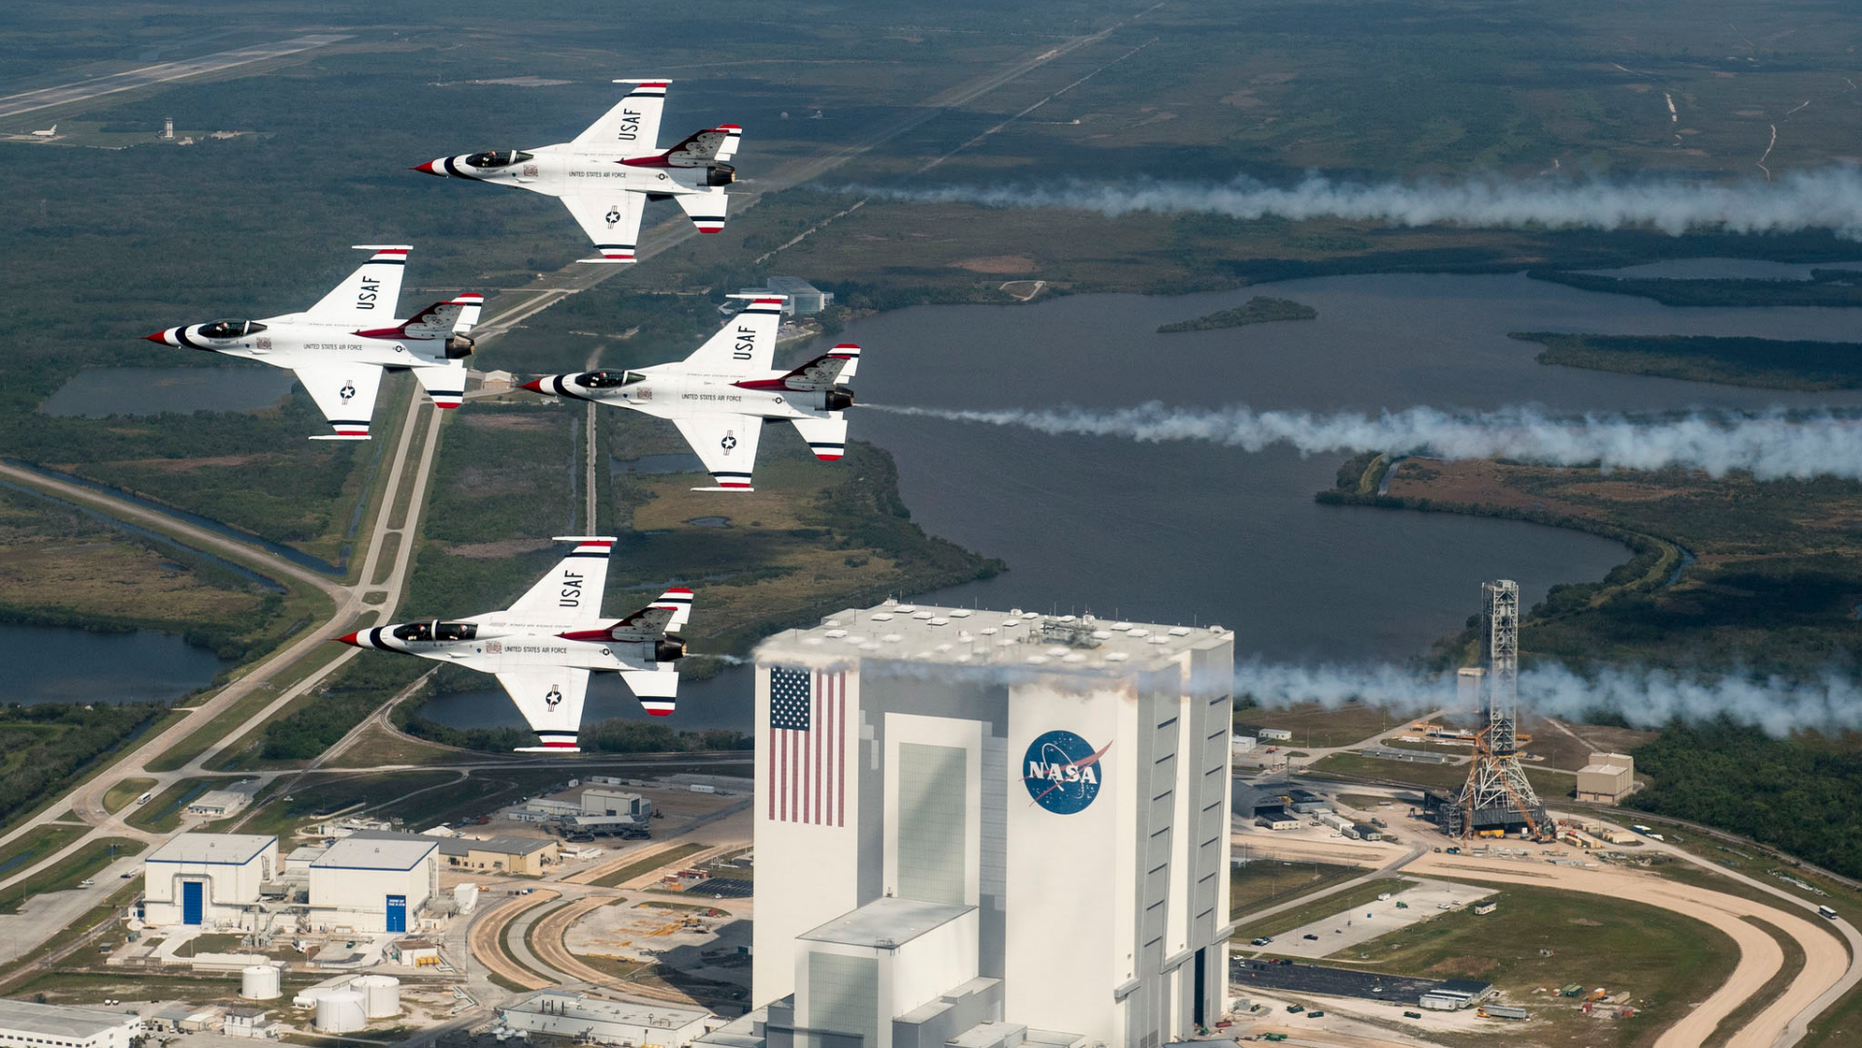 President Donald Trump wants a new Space Force branch of the U.S. military, but it reopens an old argument about military uses in space. Here, the U.S. Air Force Thunderbirds fly over NASA's Kennedy Space Center in Florida with retired NASA astronaut and Air Force Col. Buzz Aldrin.